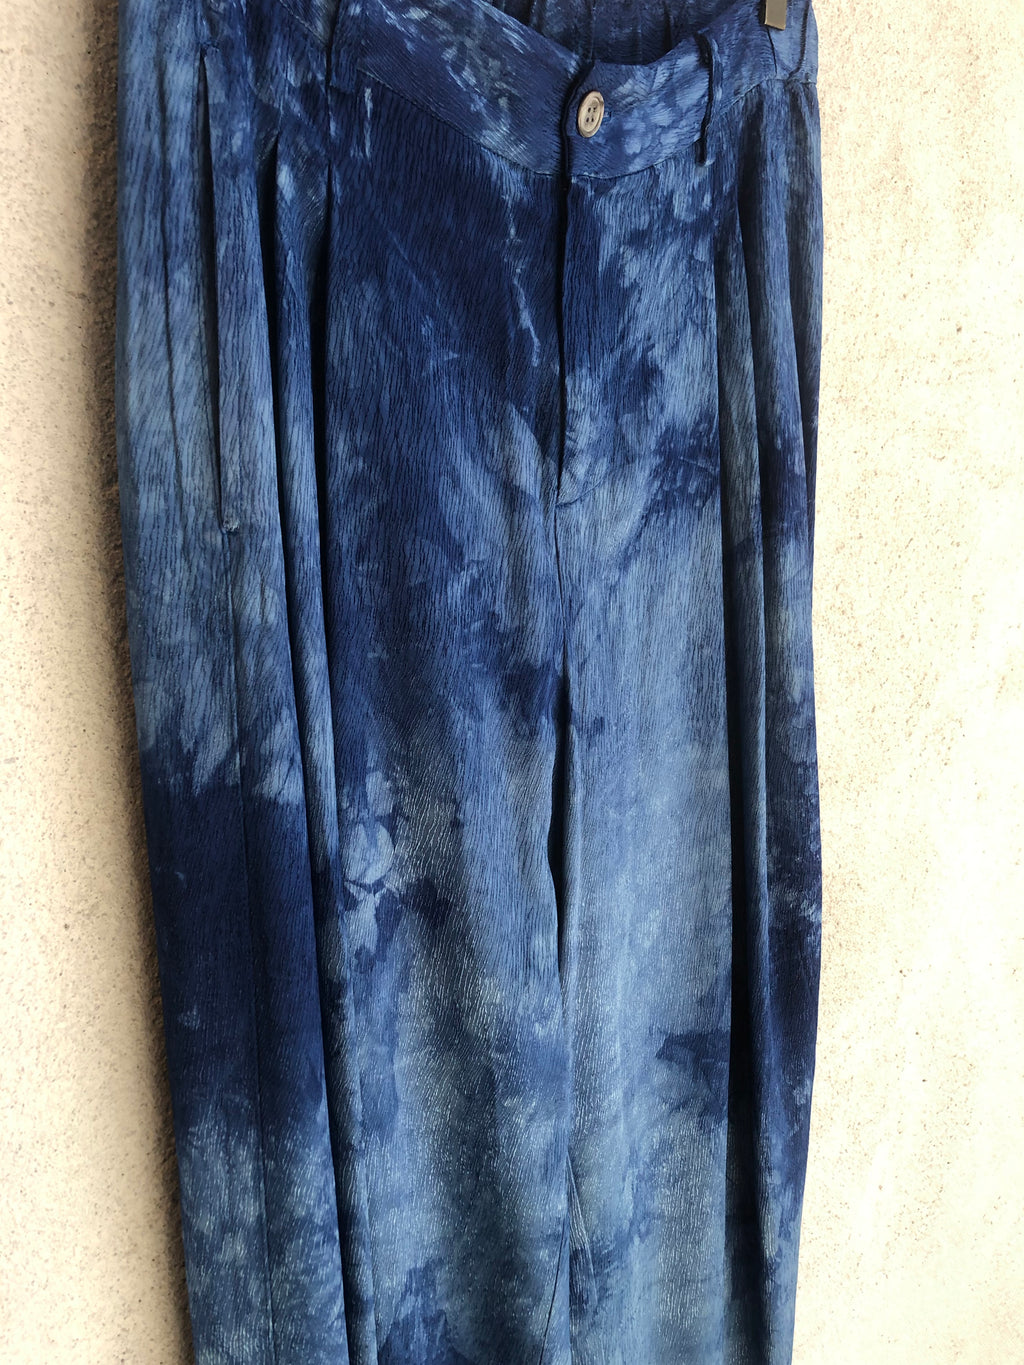 Blue Tie Dye Ripple Satin Pleated Pant